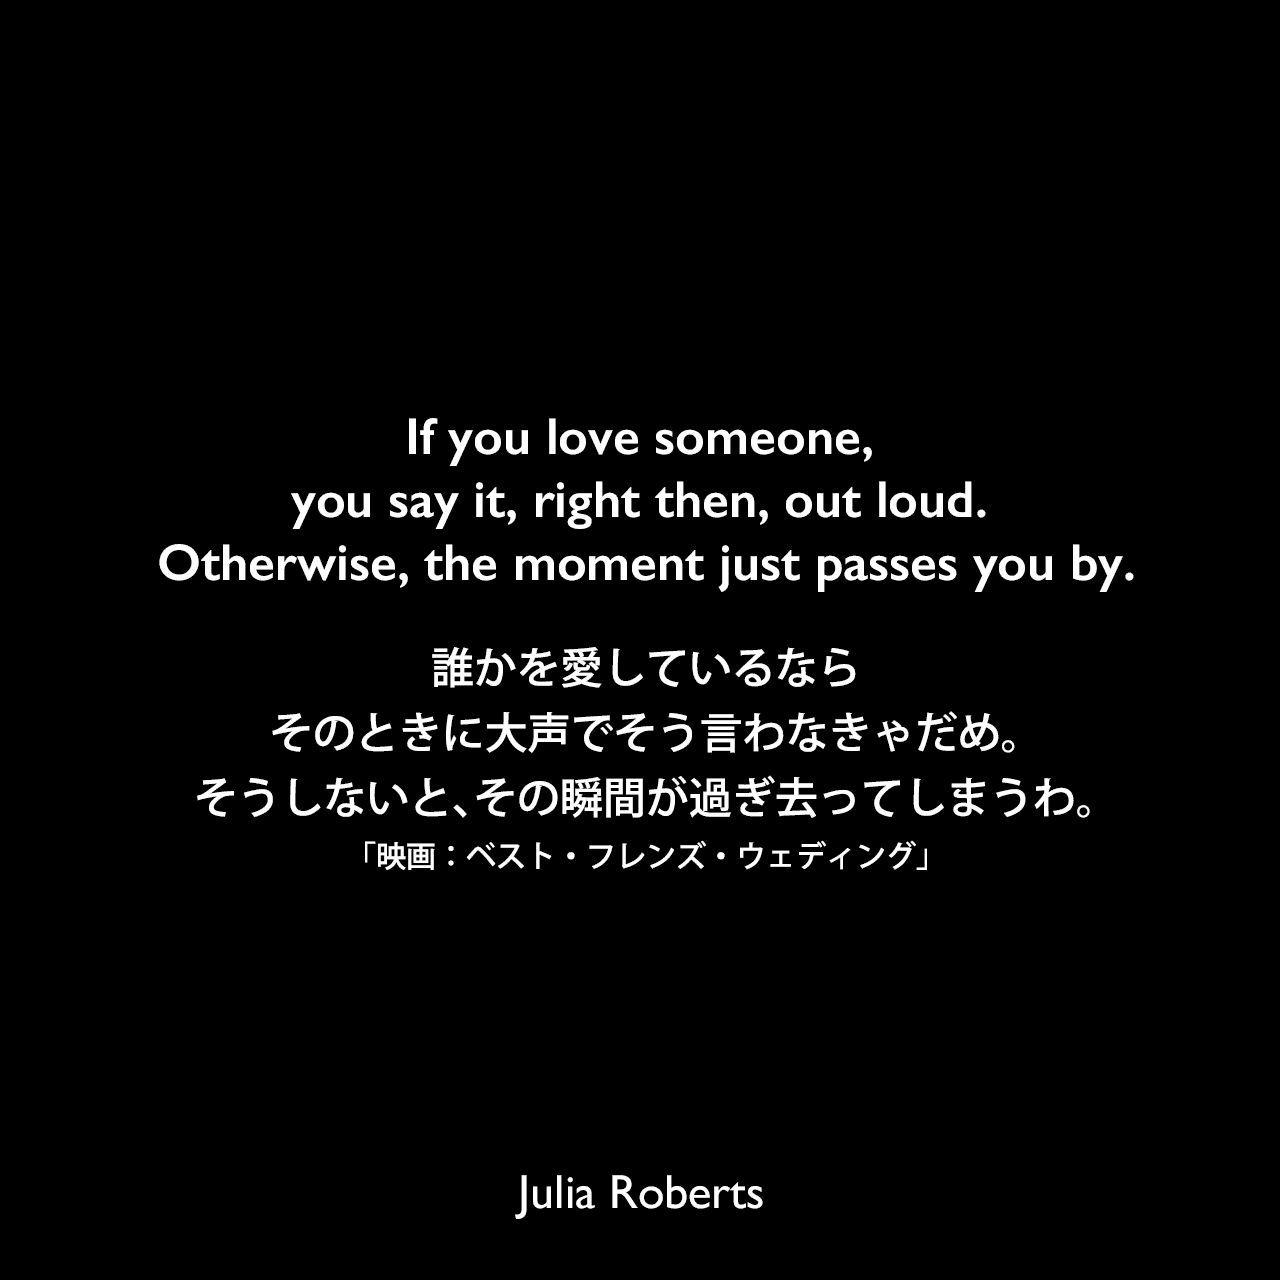 If you love someone, you say it, right then, out loud. Otherwise, the moment just passes you by.誰かを愛しているなら、そのときに大声でそう言わなきゃだめ。そうしないと、その瞬間が過ぎ去ってしまうわ。「映画:ベスト・フレンズ・ウェディング」Julia Roberts